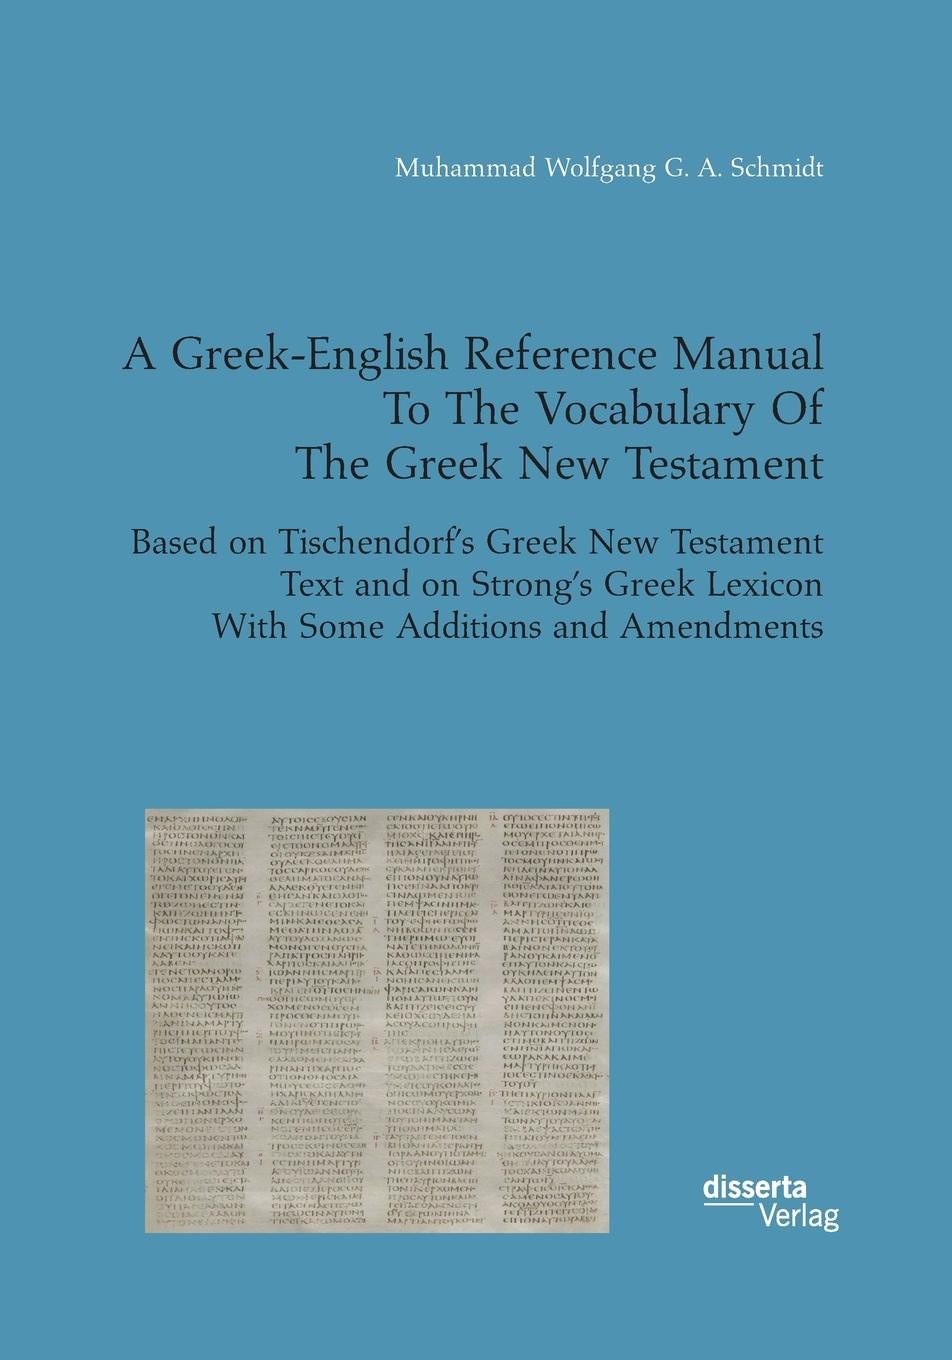 Muhammad Wolfgang G. A. Schmidt A Greek-English Reference Manual To The Vocabulary Of The Greek New Testament. Based on Tischendorf.s Greek New Testament Text and on Strong.s Greek Lexicon With Some Additions and Amendments christopher wordsworth six letters to granville sharp esq respecting his remarks on the uses of the definitive article in the greek text of the new testament